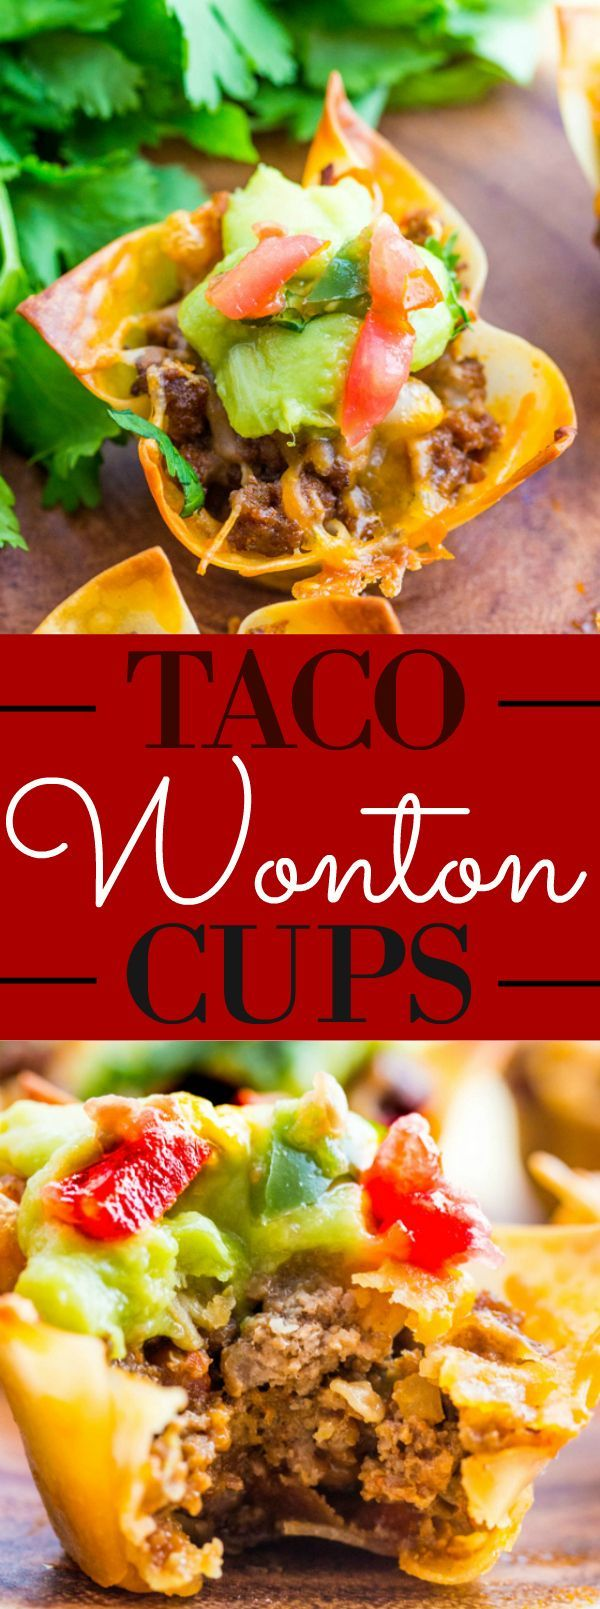 Crunchy and bite sized these Taco Wonton Cups are a quick and easy appetizer for any time of day.